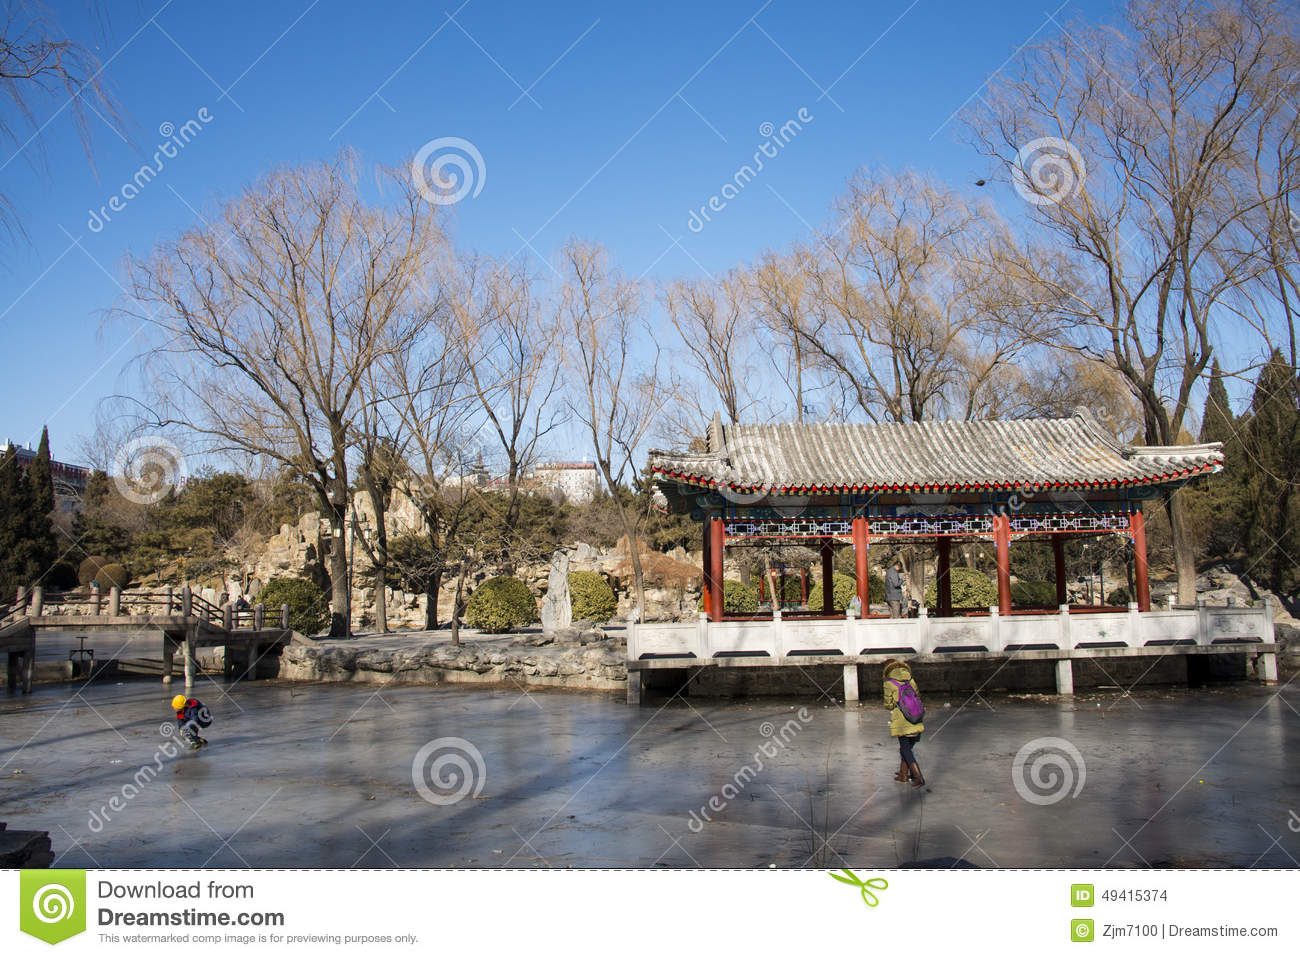 Download Asiat China, Peking, Ritan-Park Redaktionelles Stockbild - Bild von porzellan, gebäude: 49415374